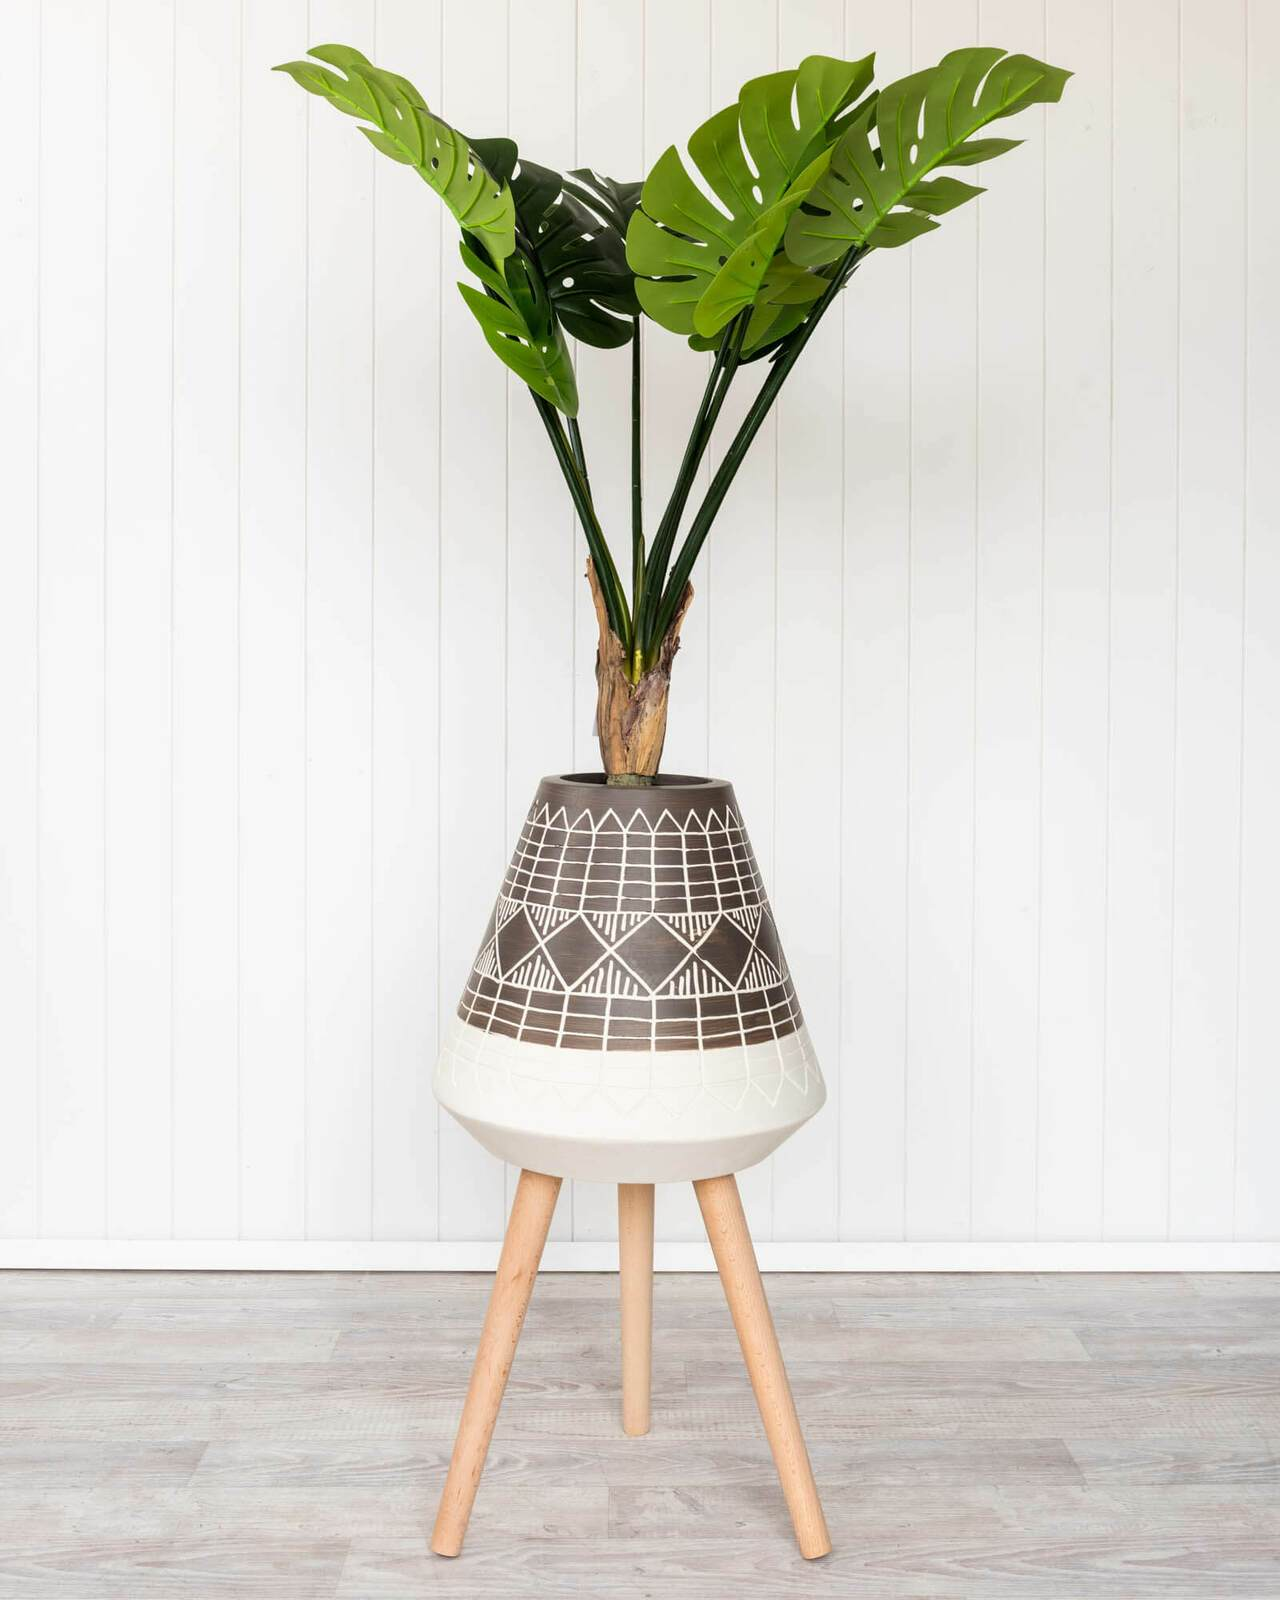 Ndee - Thin Tulip Planter -   44x44x81cm - Bronx Homewares